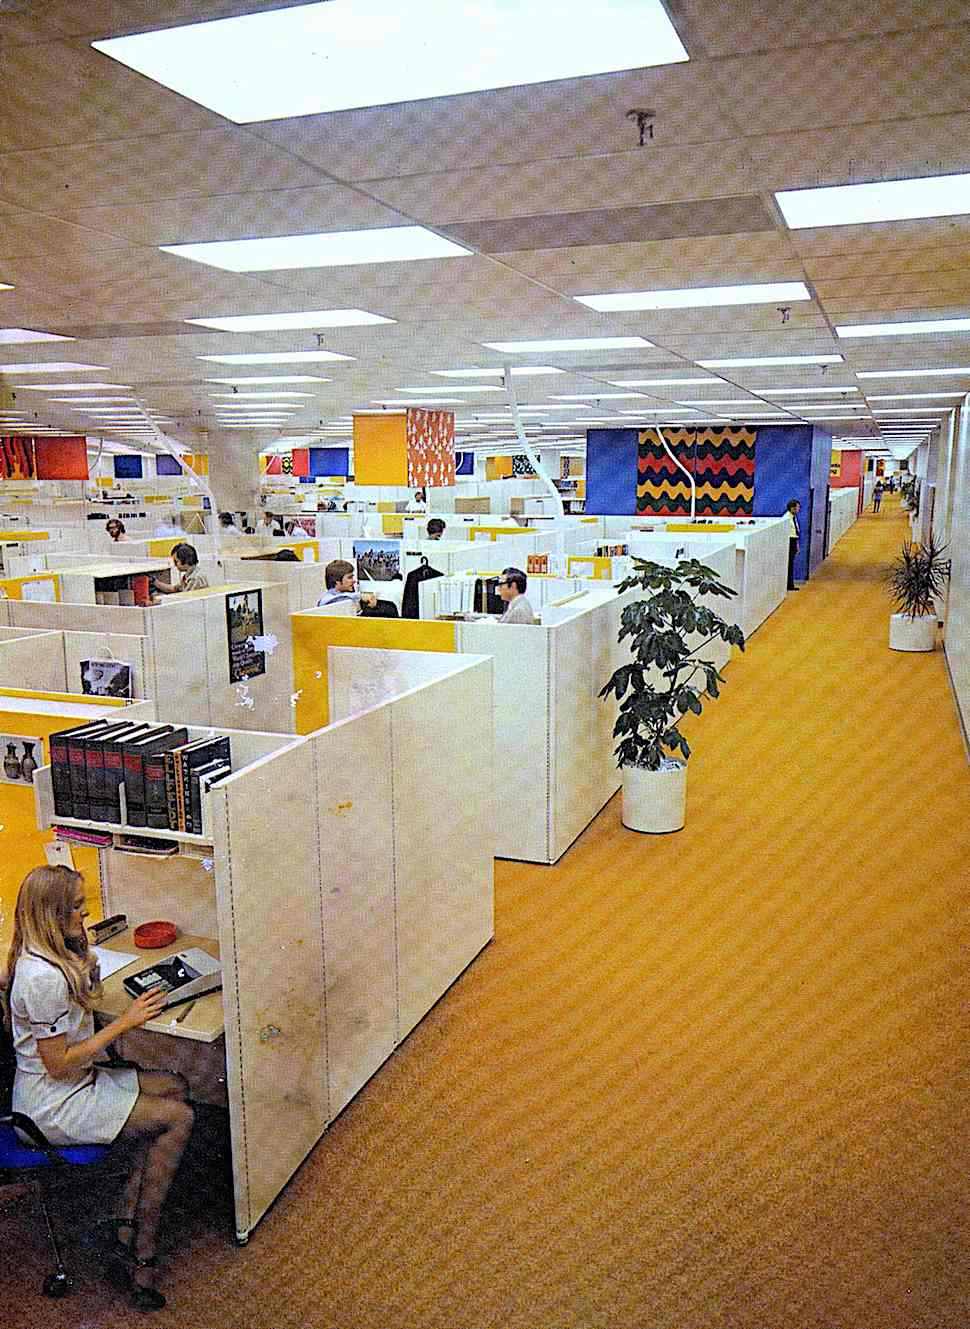 1975 office cubicles and colors, a photograph